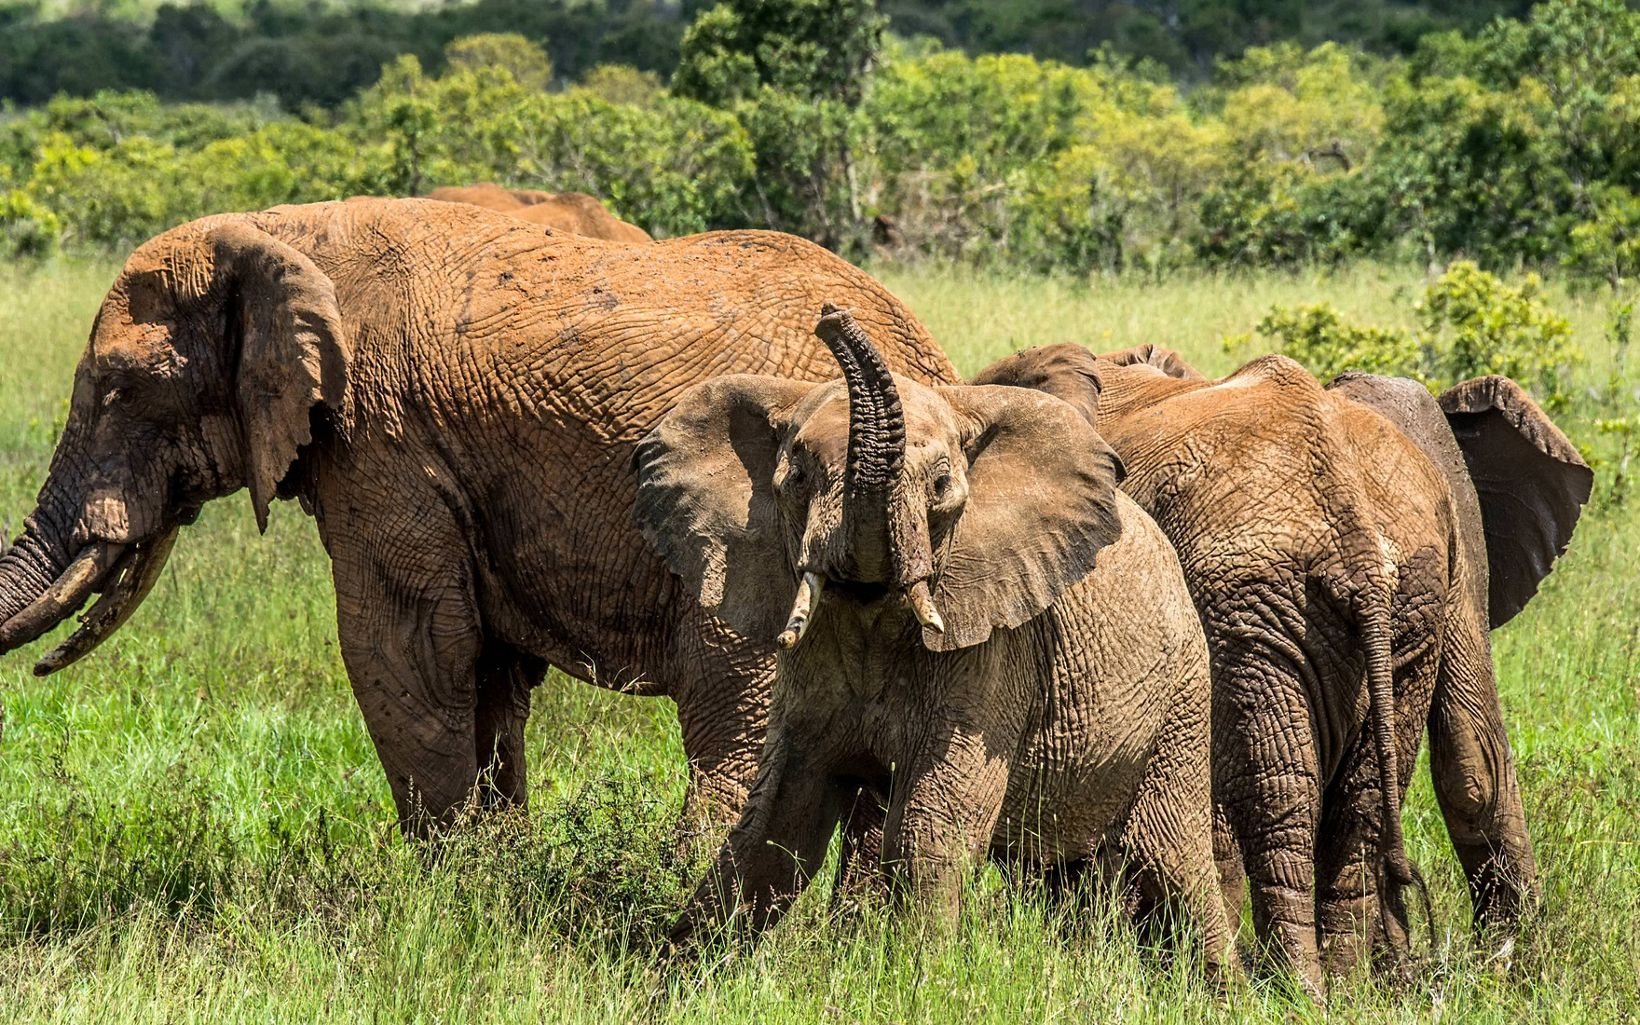 Wild elephants at Loisaba Conservancy in northern Kenya.